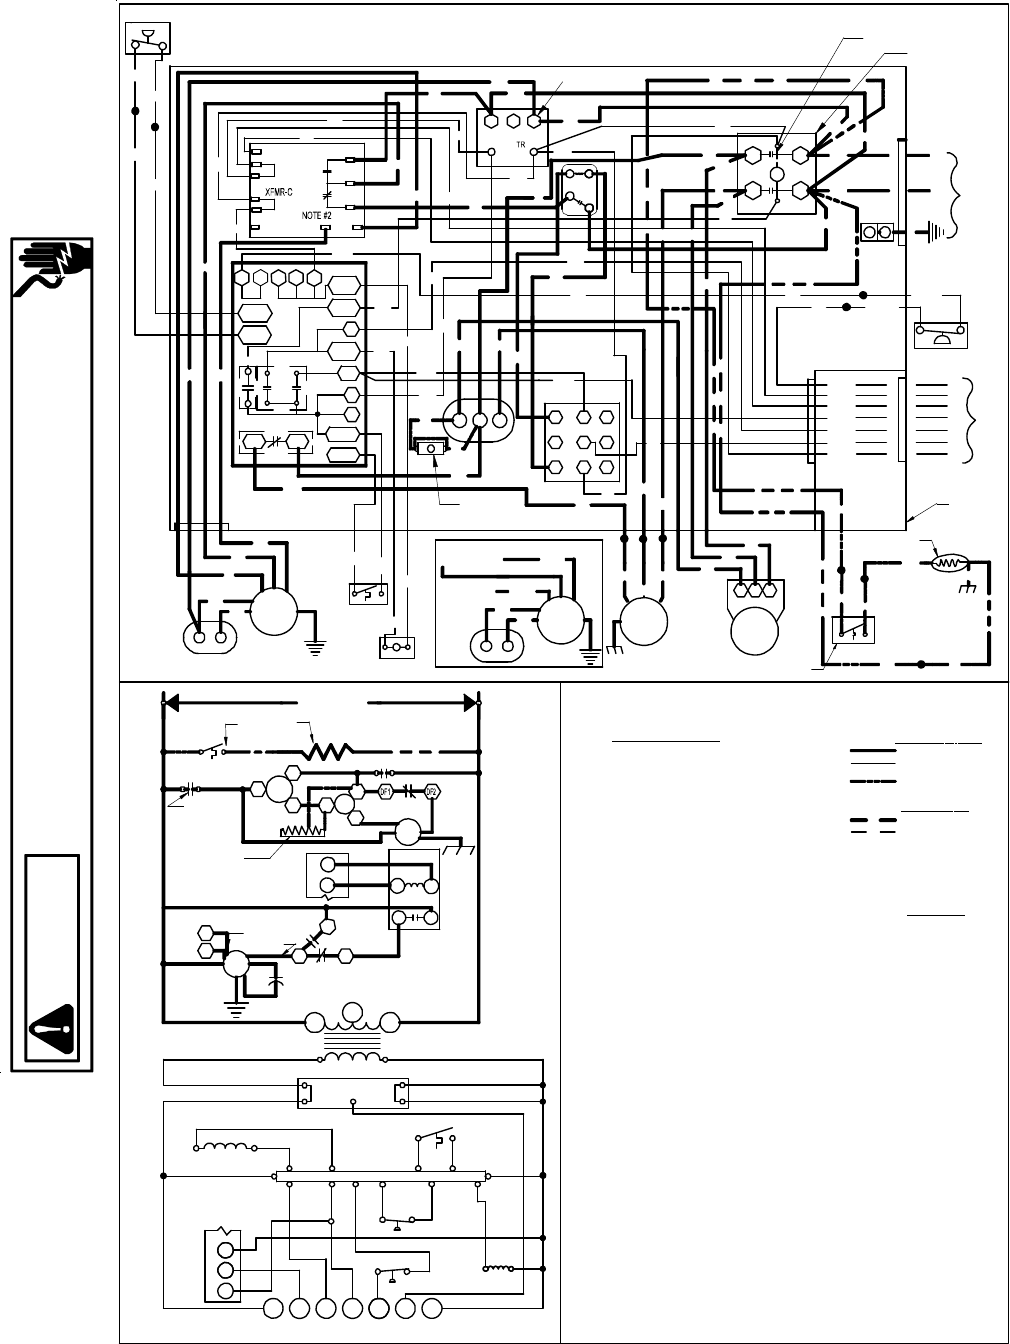 goodman air handler diagram with Rt6332013r1 on Rt6332013r1 together with 559688 Goodman Fan Heat Strips Run Constantly in addition 560639 American Standard Trane Heat Pump Air Handler Thermostat Not Wired Correct additionally Air Conditioner Checklist likewise 00001 shdMod  C18E721.